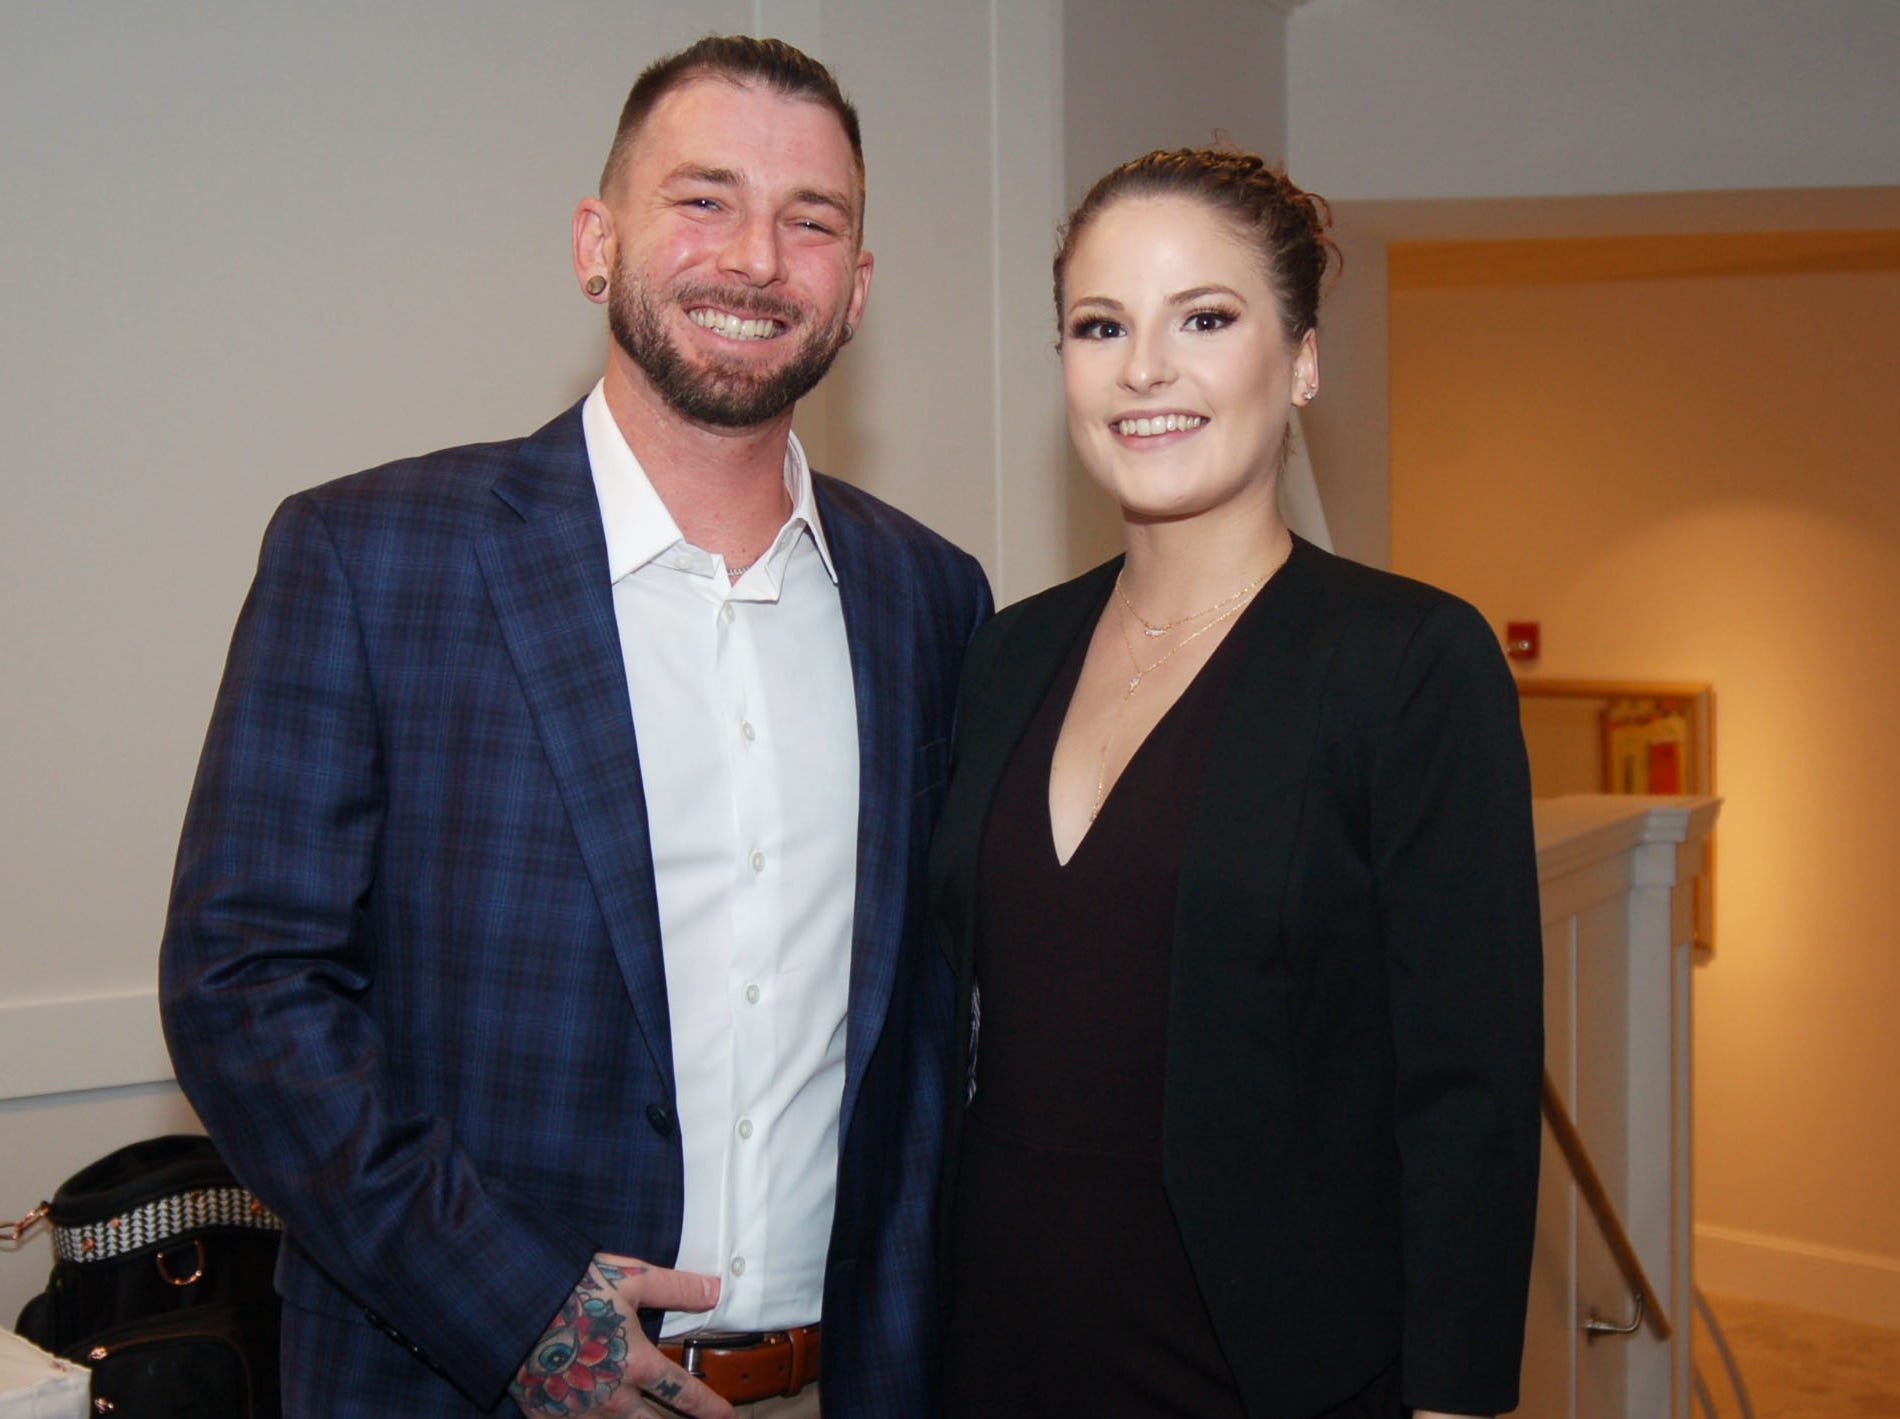 Blake and Danielle Rothmel at Admirals Cove in Jupiter for the VIP kick-off reception for the American Cancer Society's 2019 Celestial Gala.